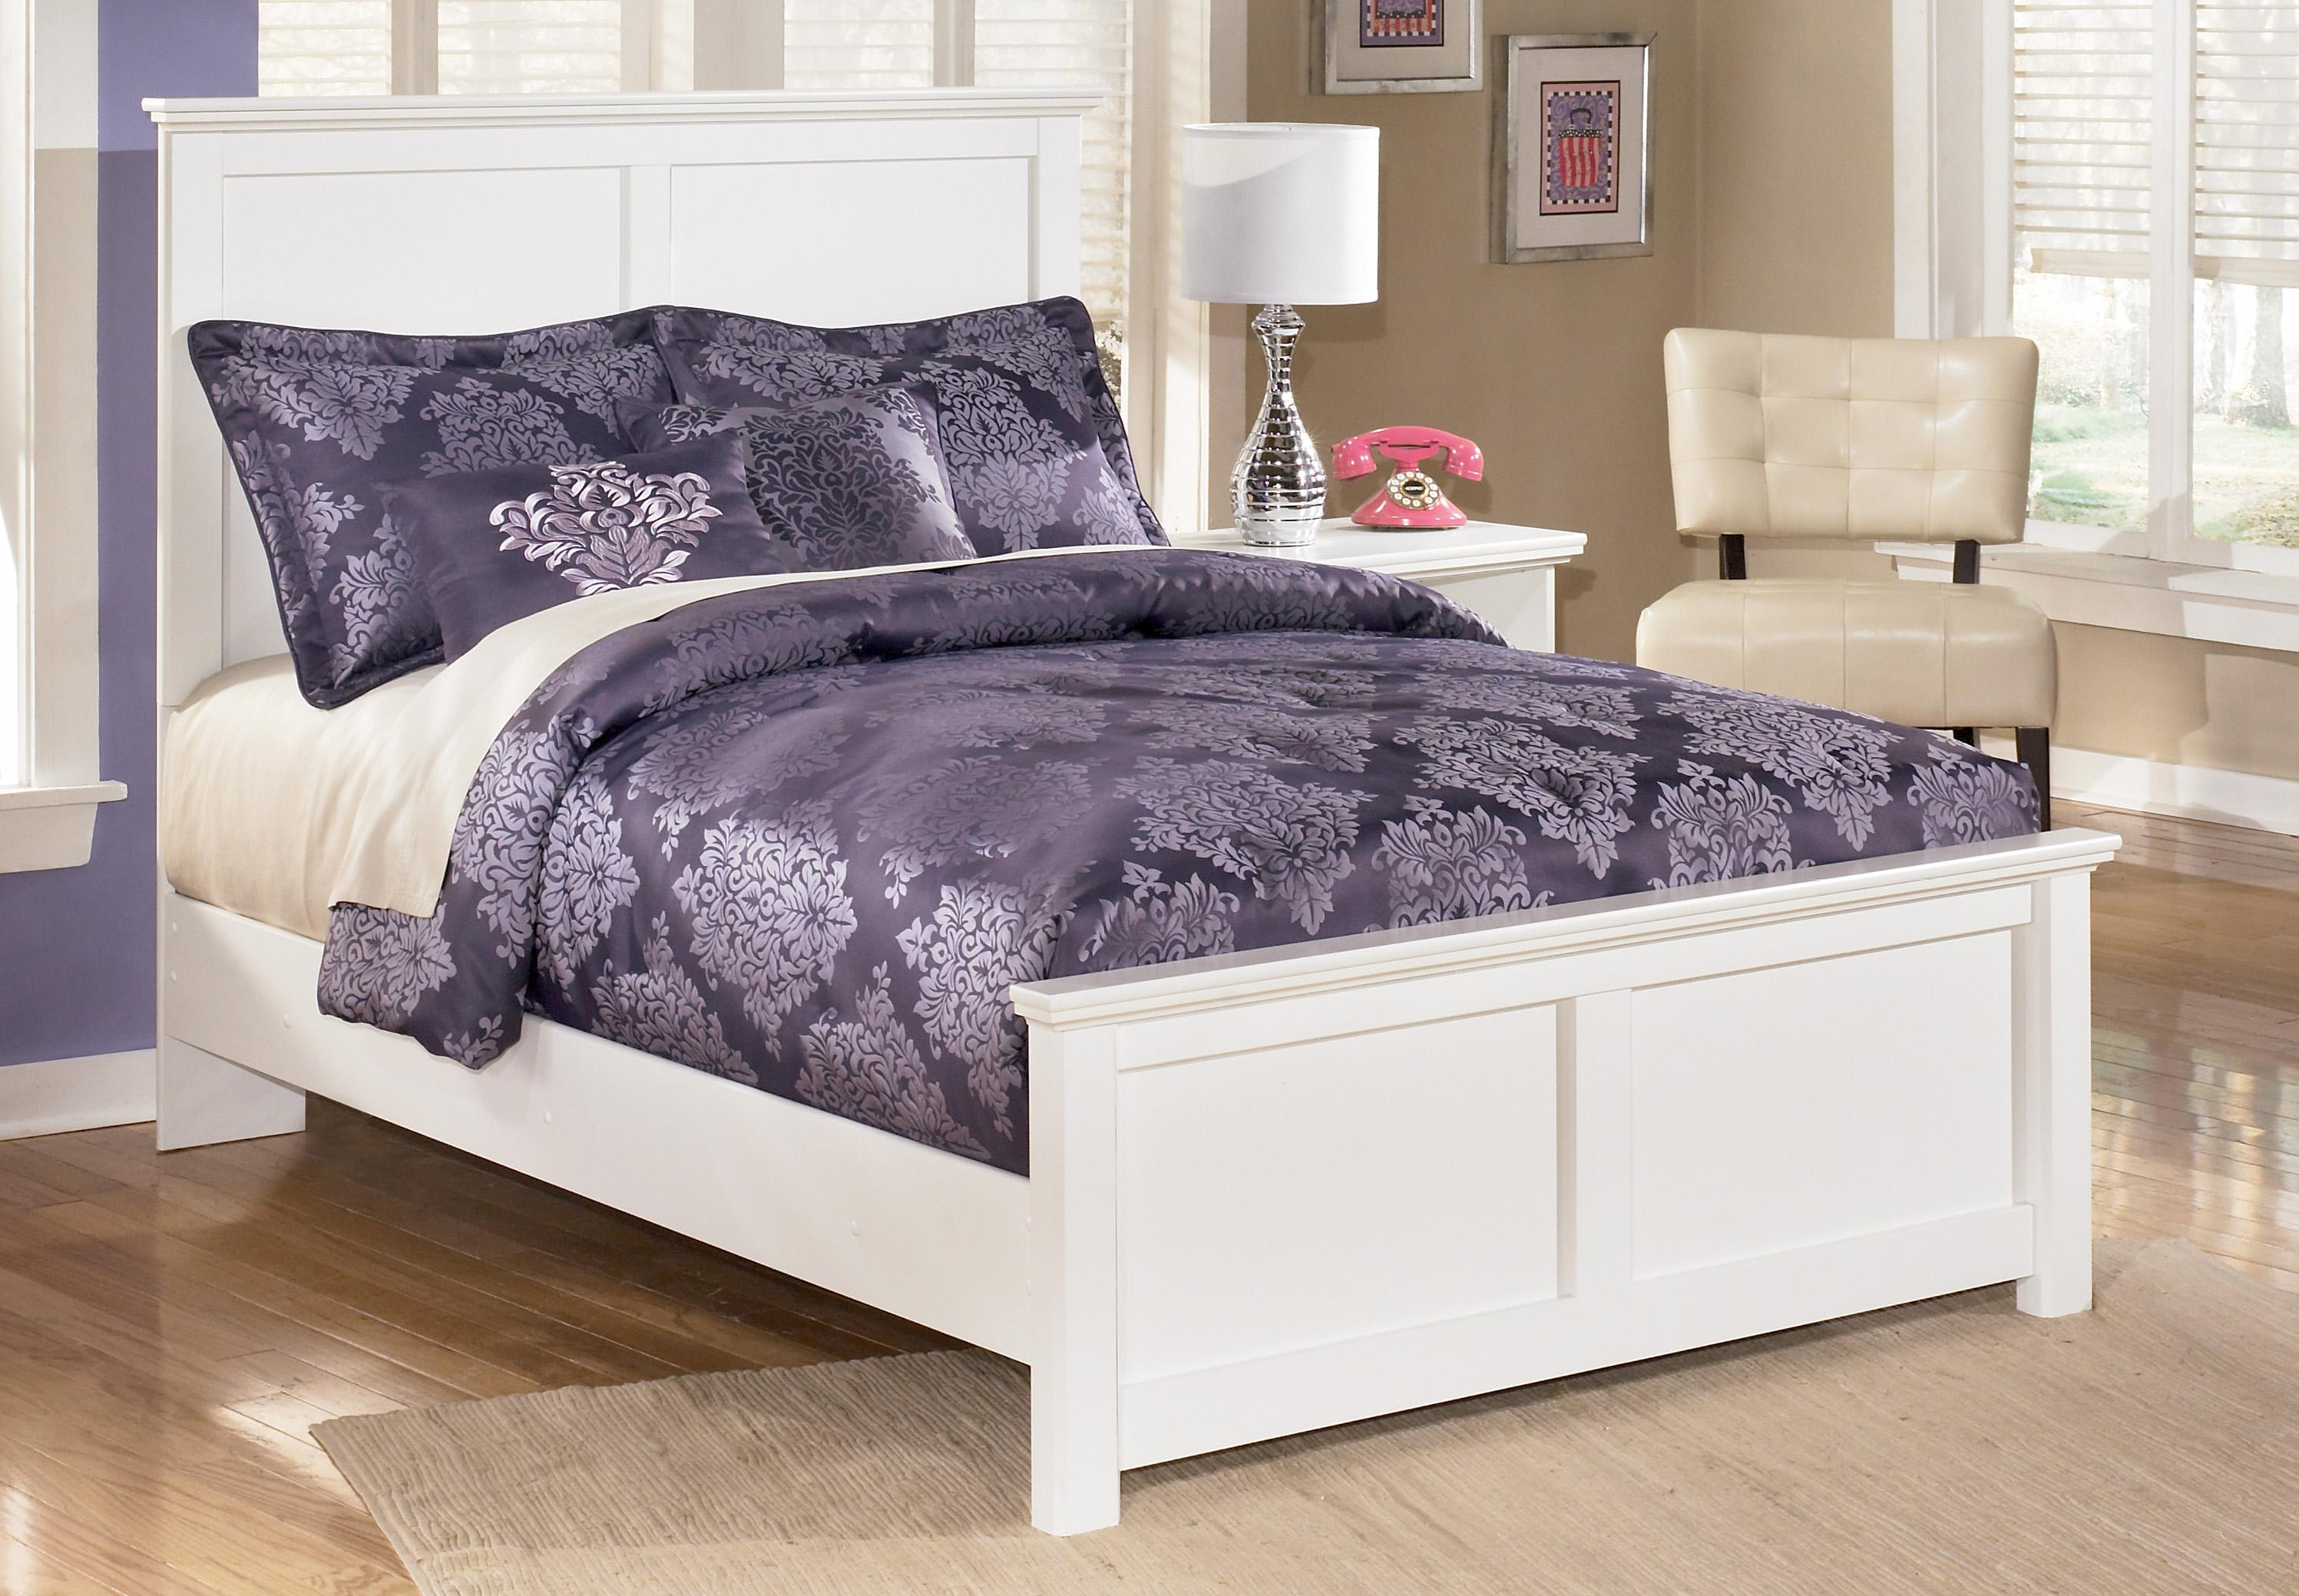 Signature Design by Ashley Bostwick Shoals Queen Panel Bed - Item Number: B139-57+54